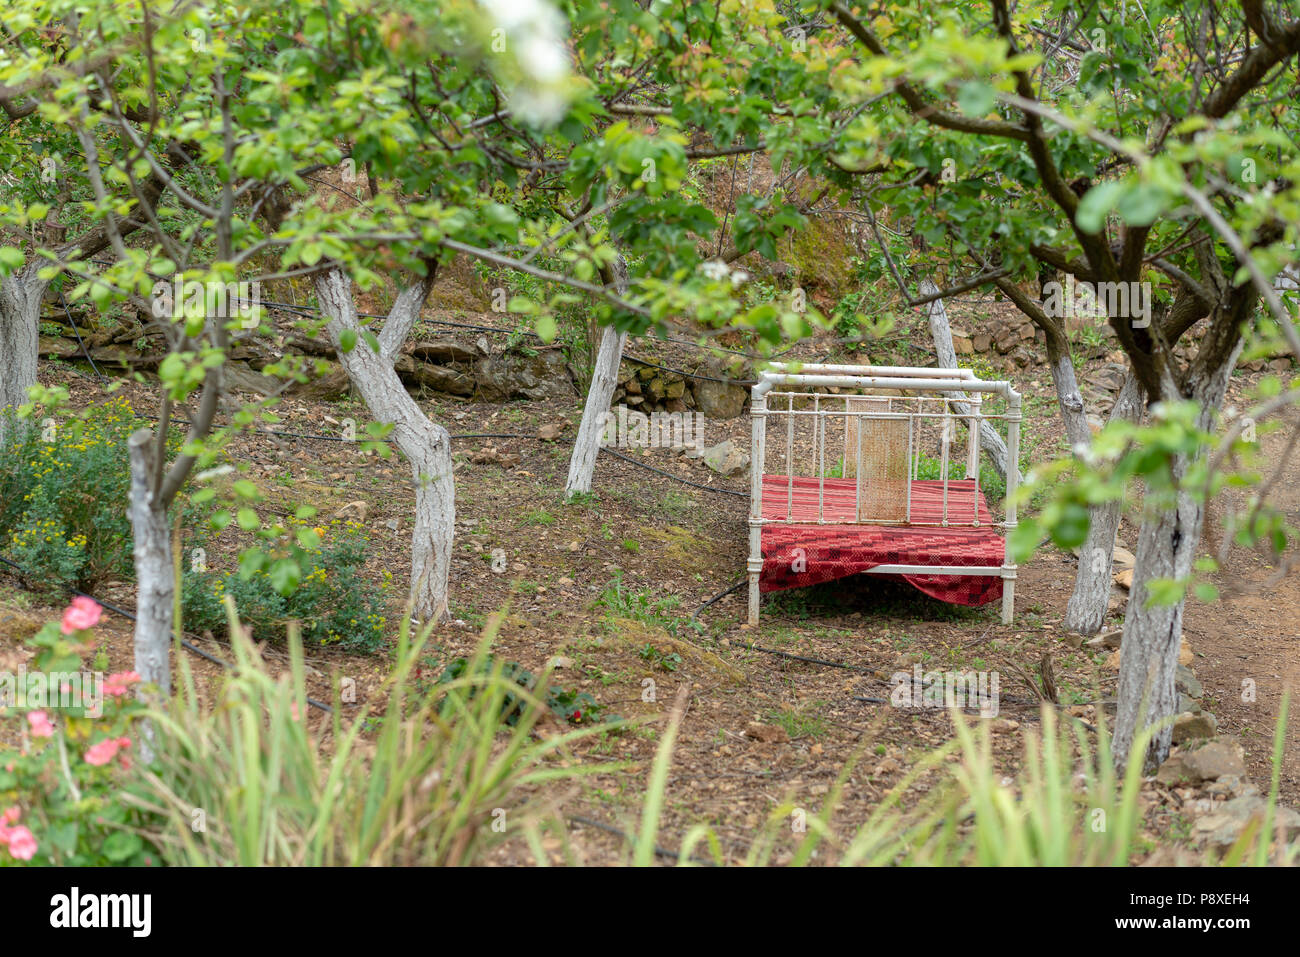 A vintage iron bedstead or bed outside in an orchard at the Botanical garden of Crete, Chania - Stock Image